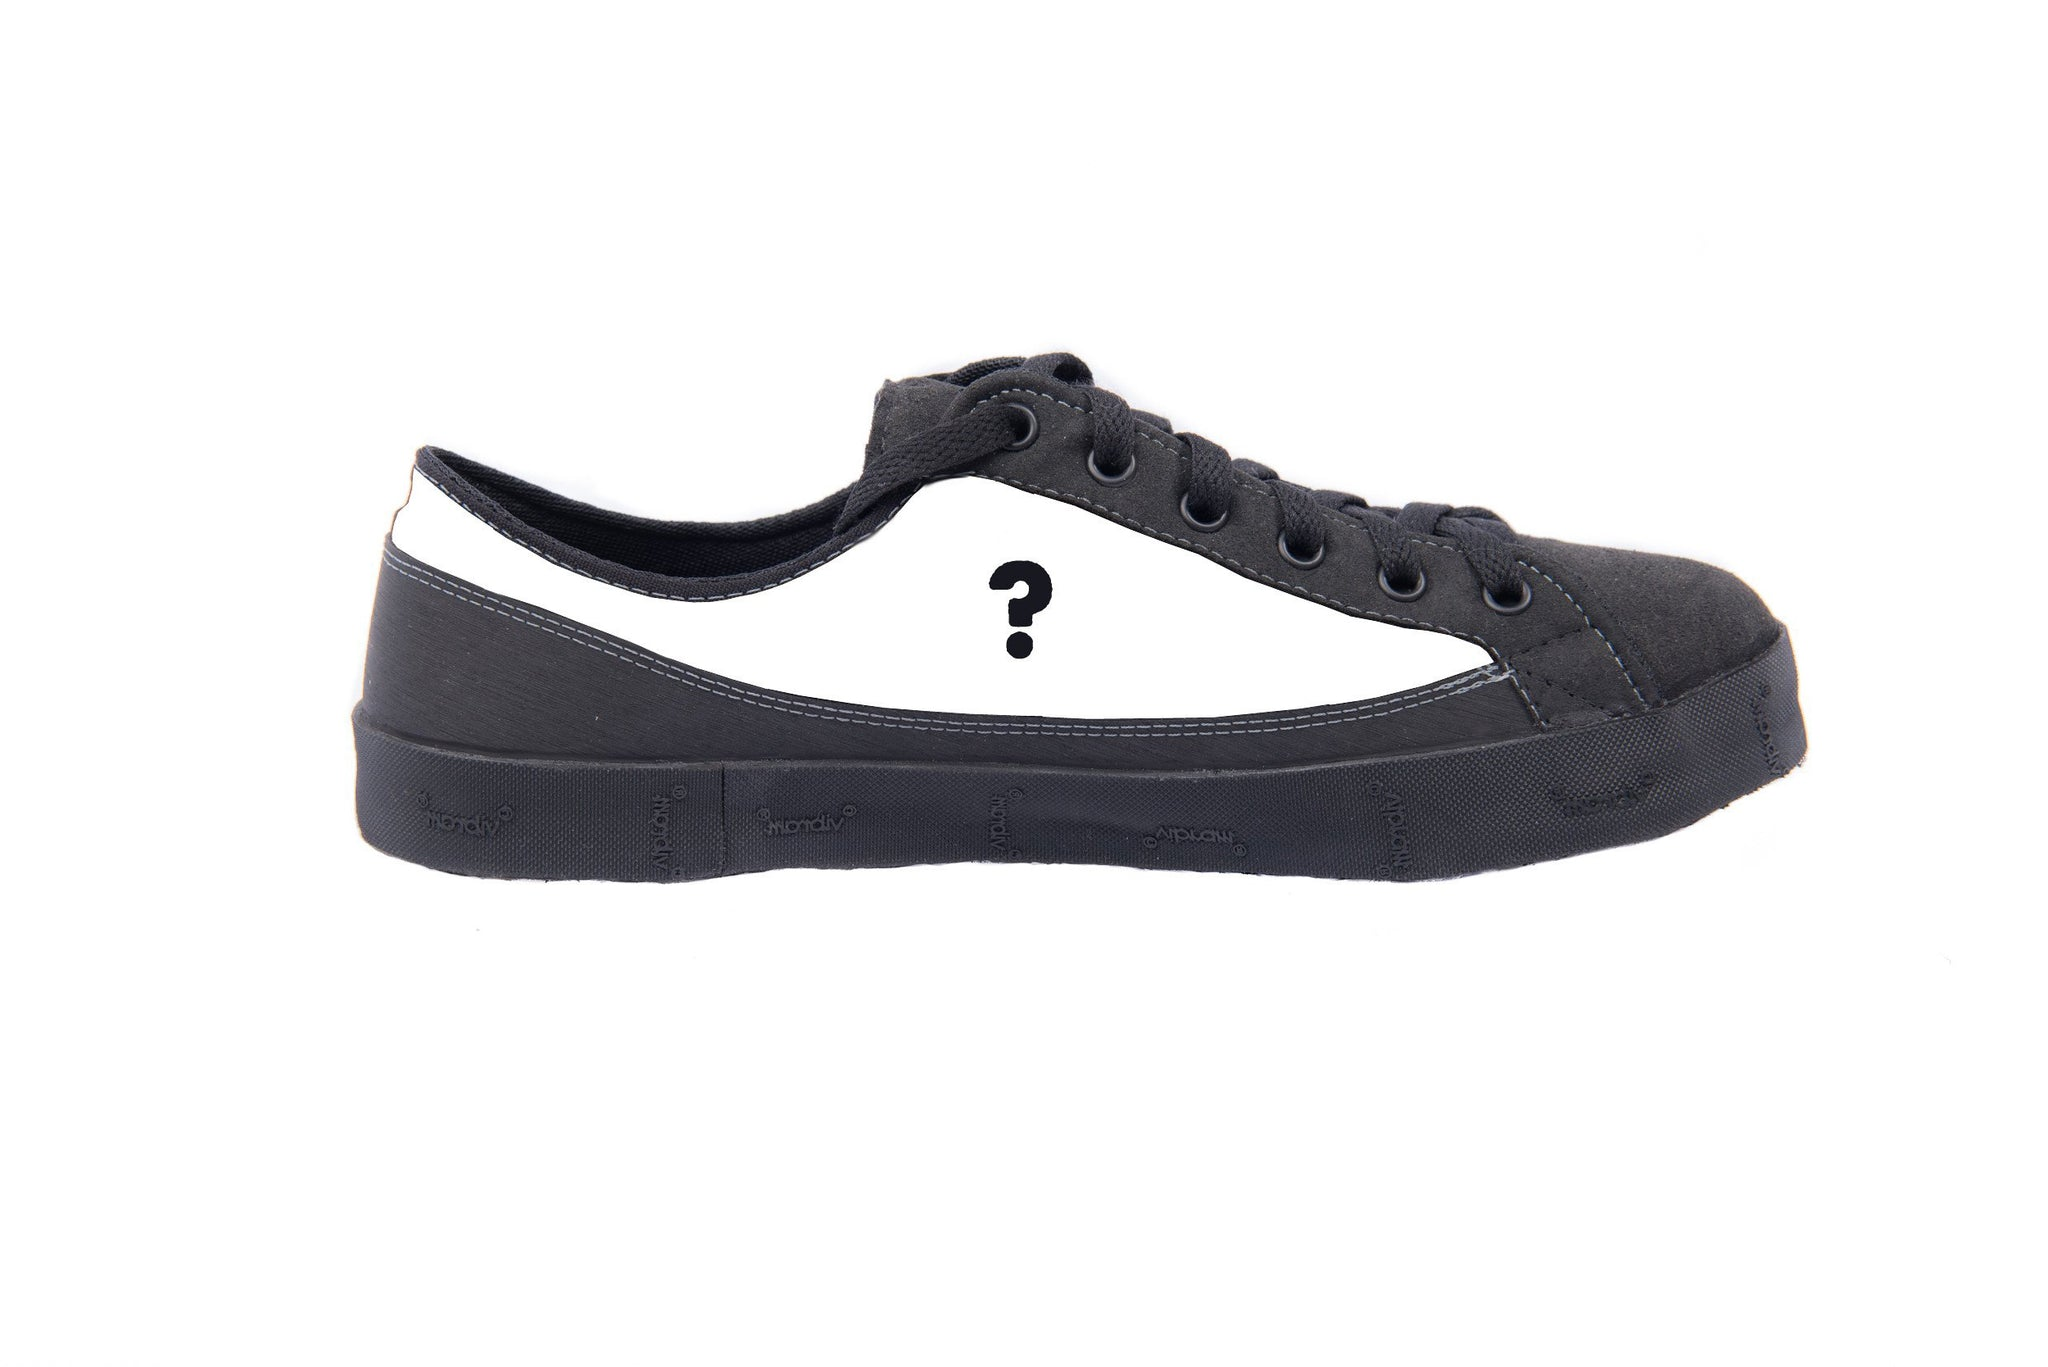 2a6e19ceb2 ... SOM barefoot inspired minimalist shoe with question mark on blank upper  ...